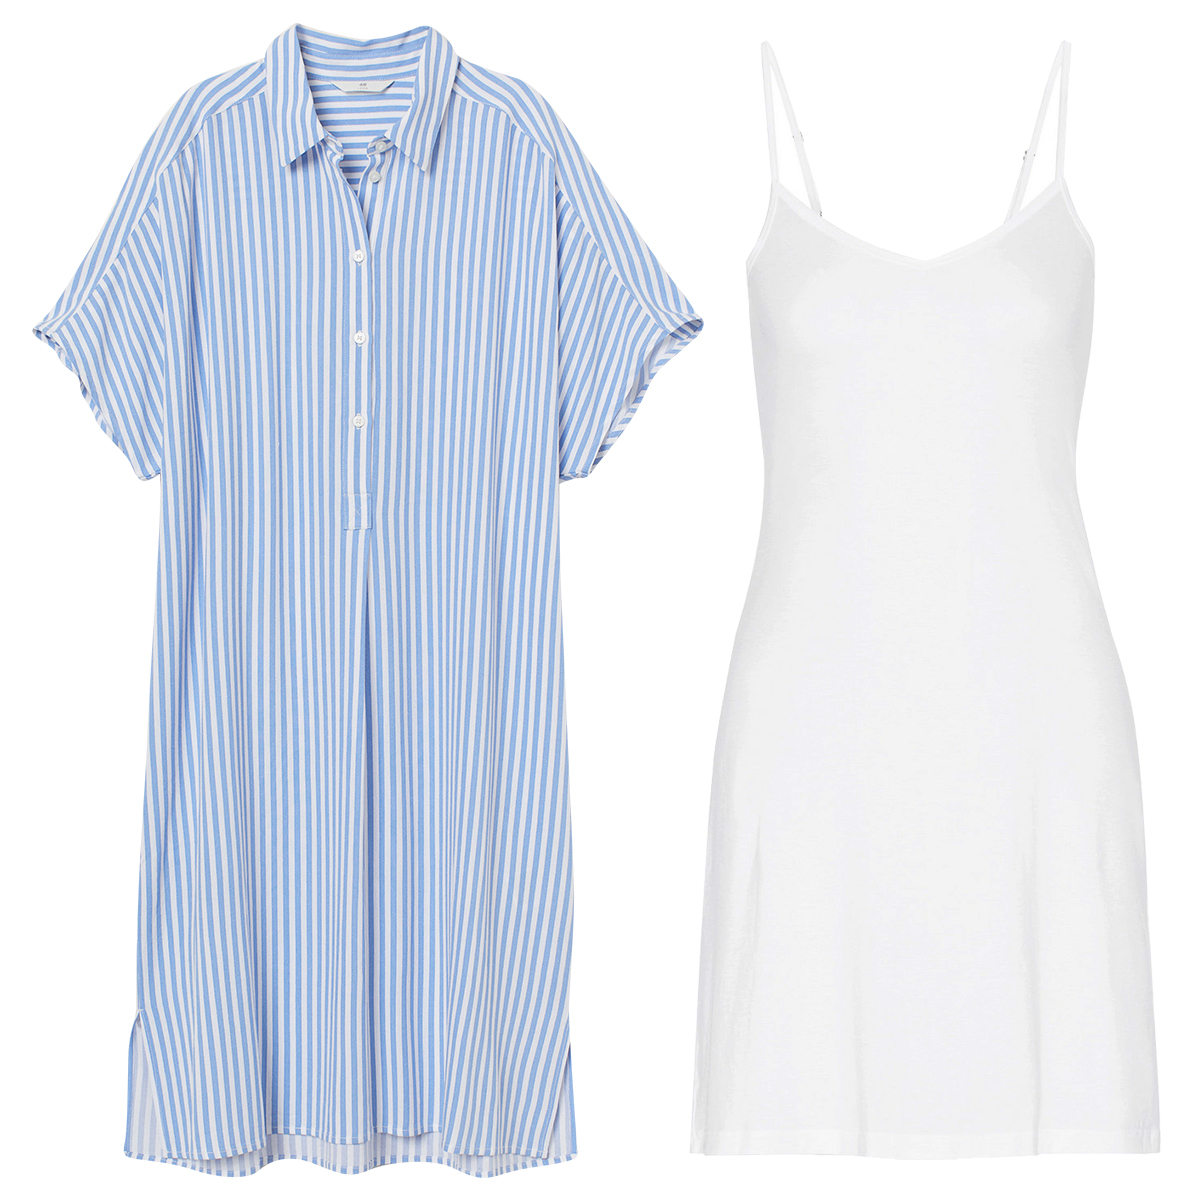 The Problem: A Semi-Sheer Shirt Dress